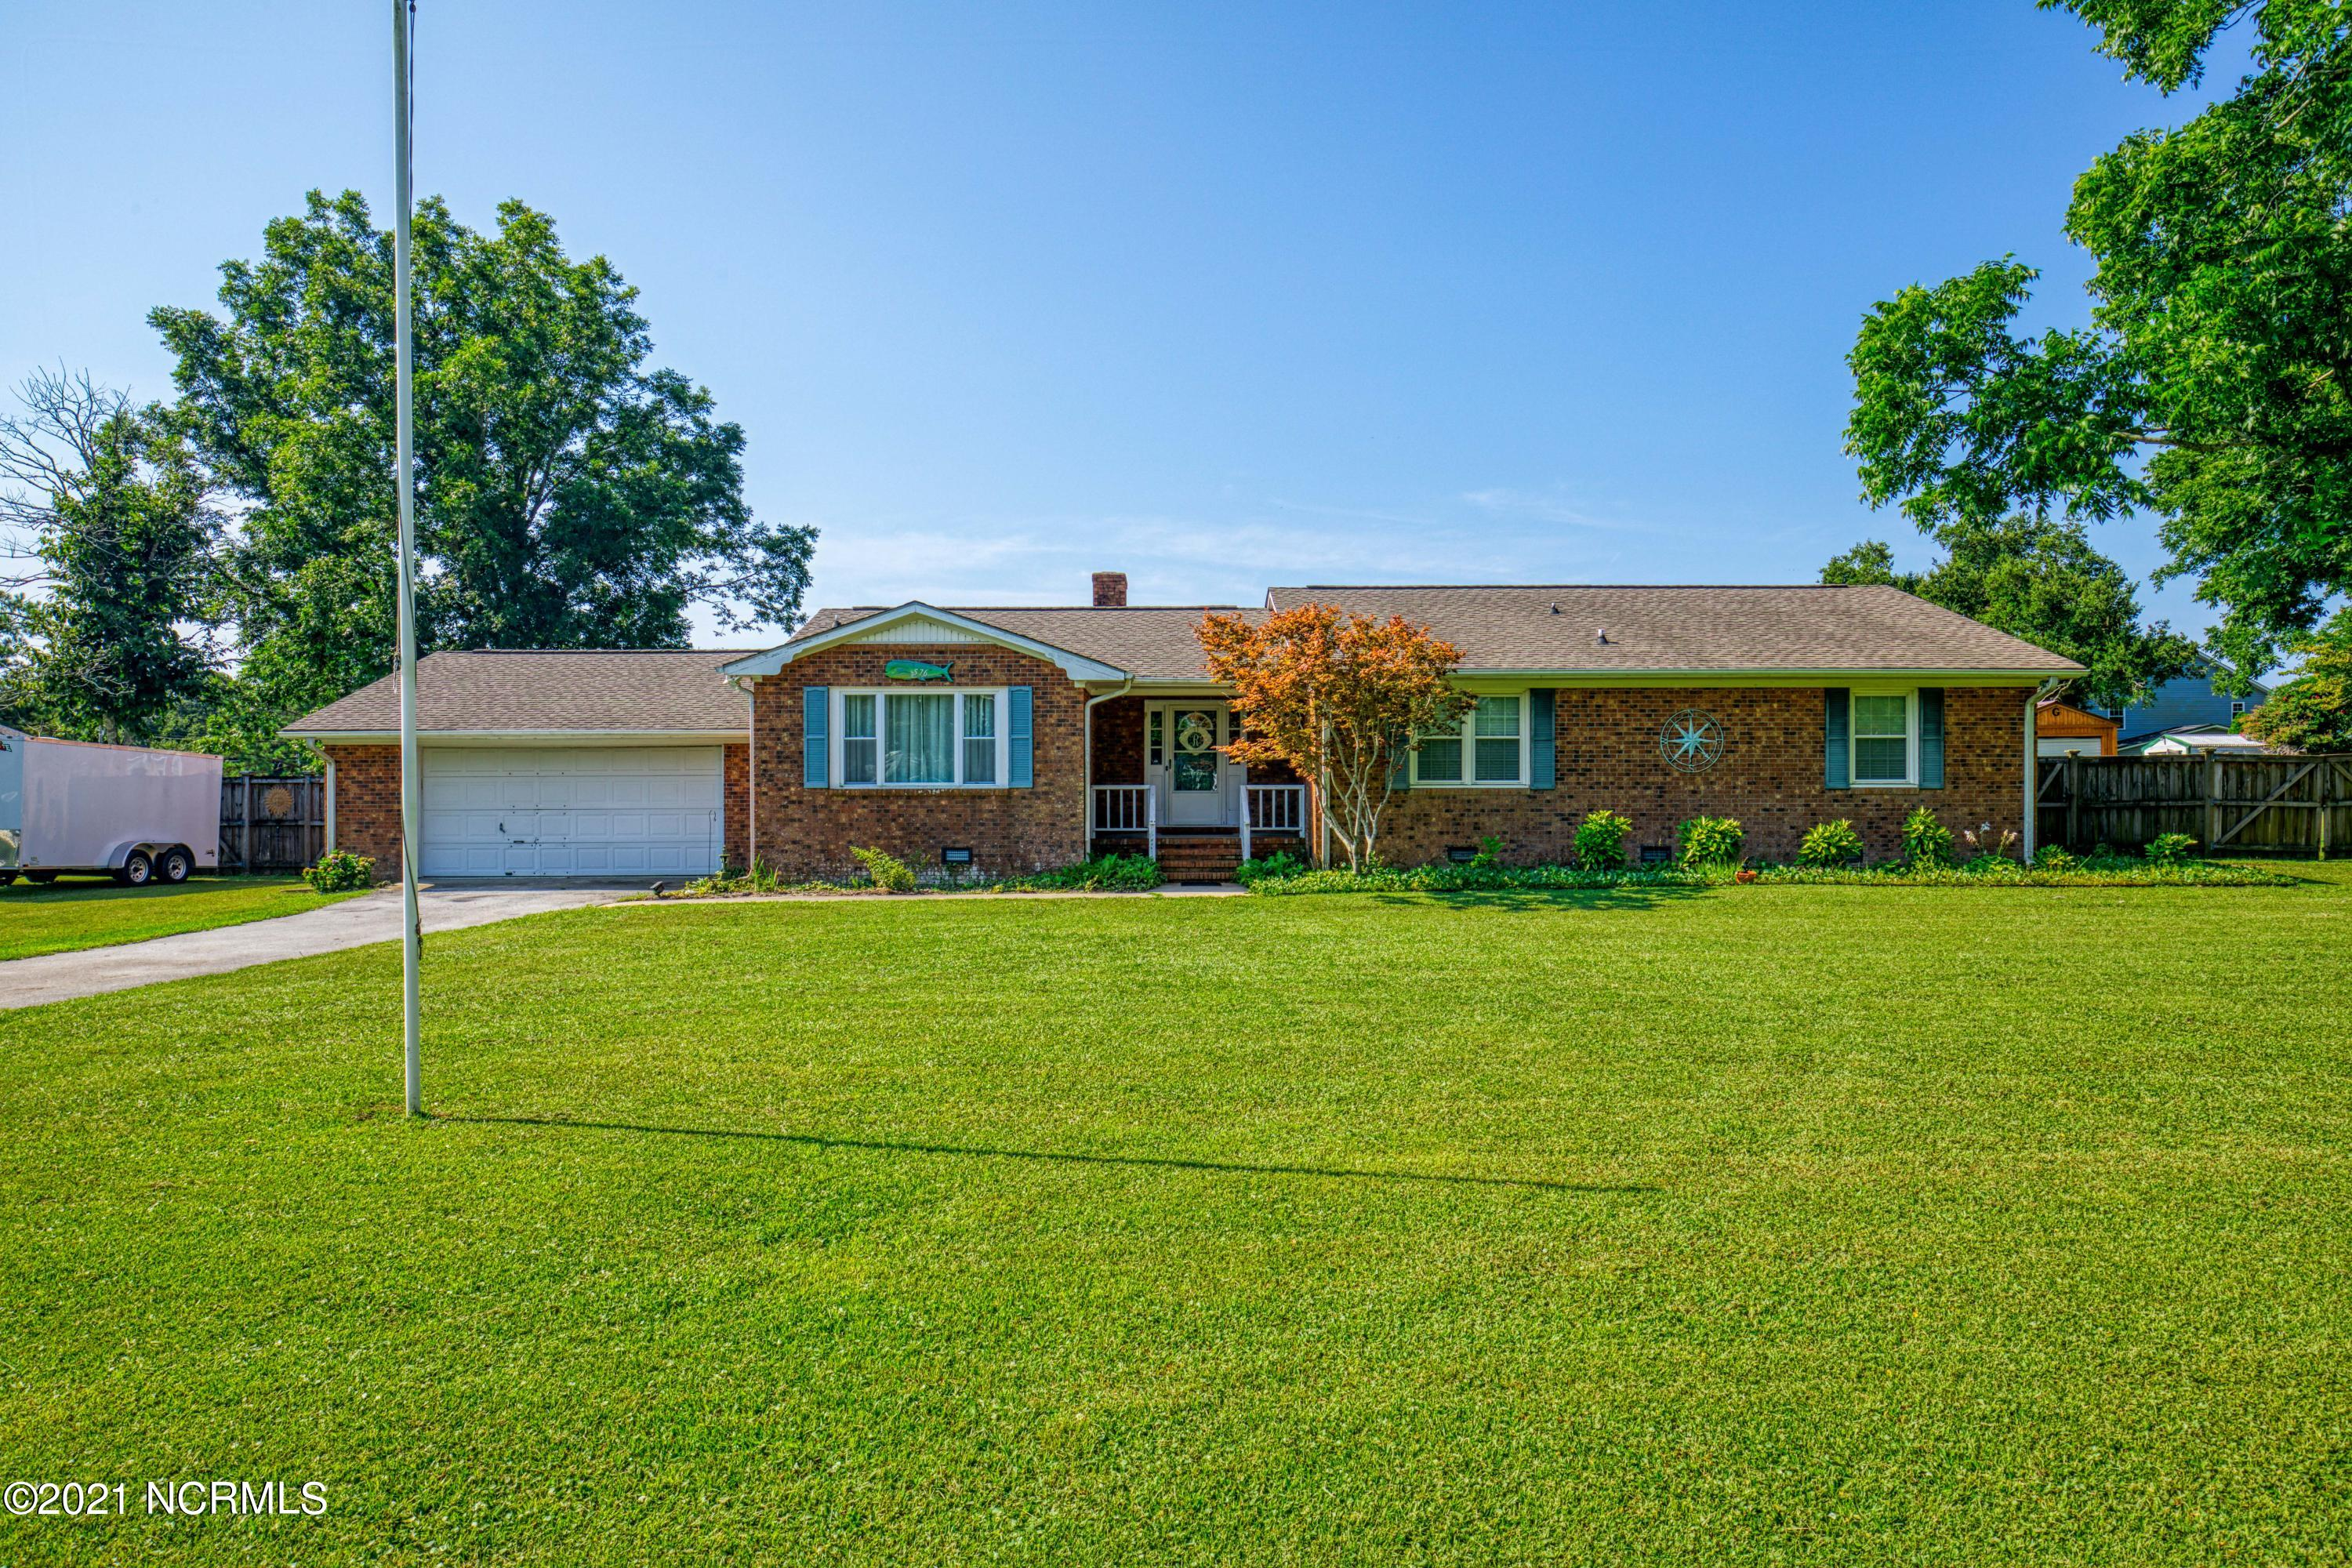 3 Bedroom 2 Bath brick ranch in the highly desirable heart of Sneads Ferry. Large lot with a fenced in backyard. Golf cart distance to New River Marina/ Boat ramp for ice cream runs in the summer or to see the local catch of the day. Minutes from the backgate and Stone Bay. With a little TLC this could be your forever home.